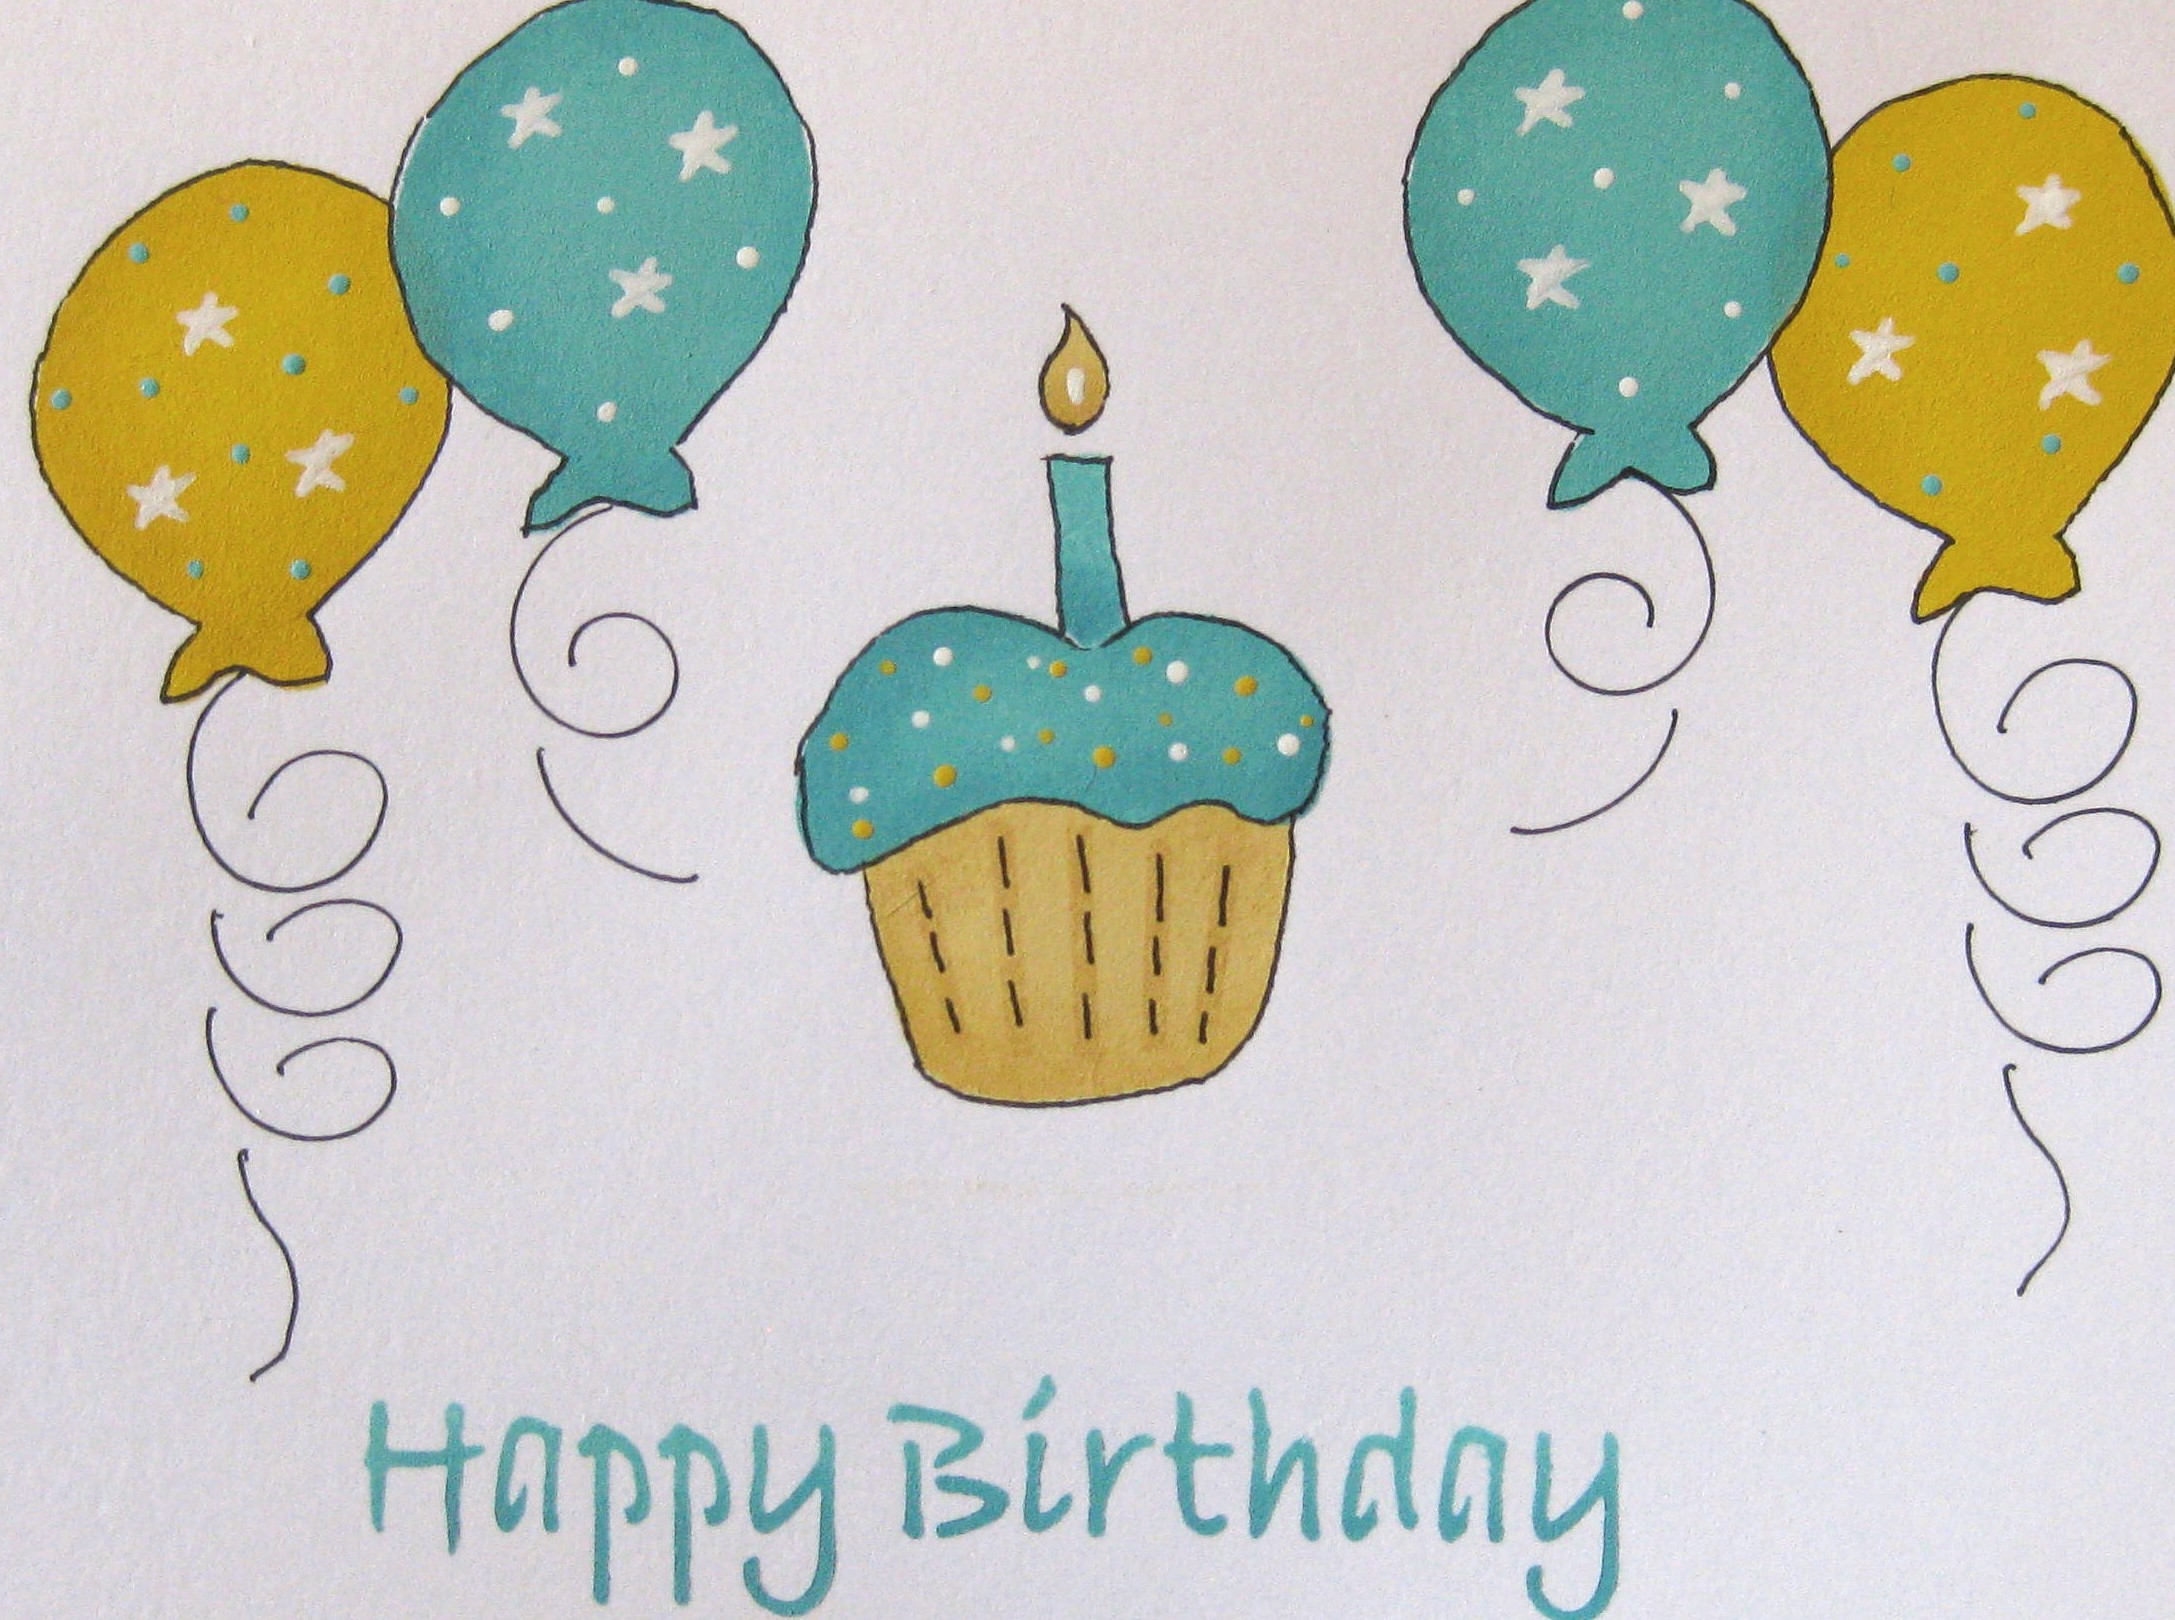 WrittenCards Greeting Cards